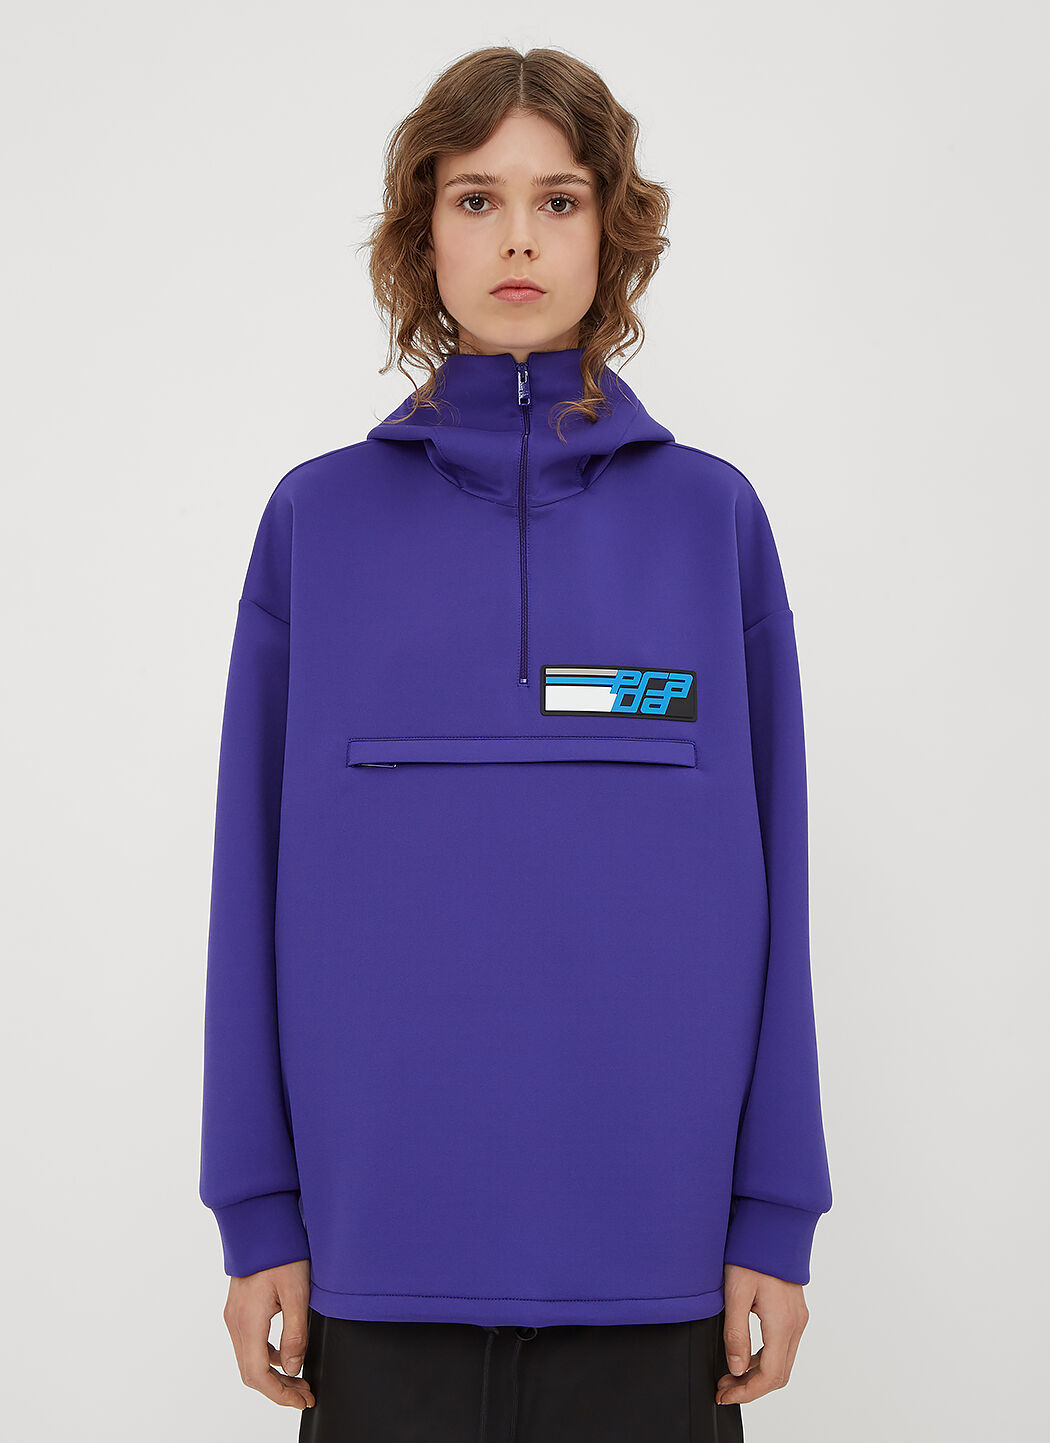 Patch Top Half Logo Prada zip Hooded Ywq0456x